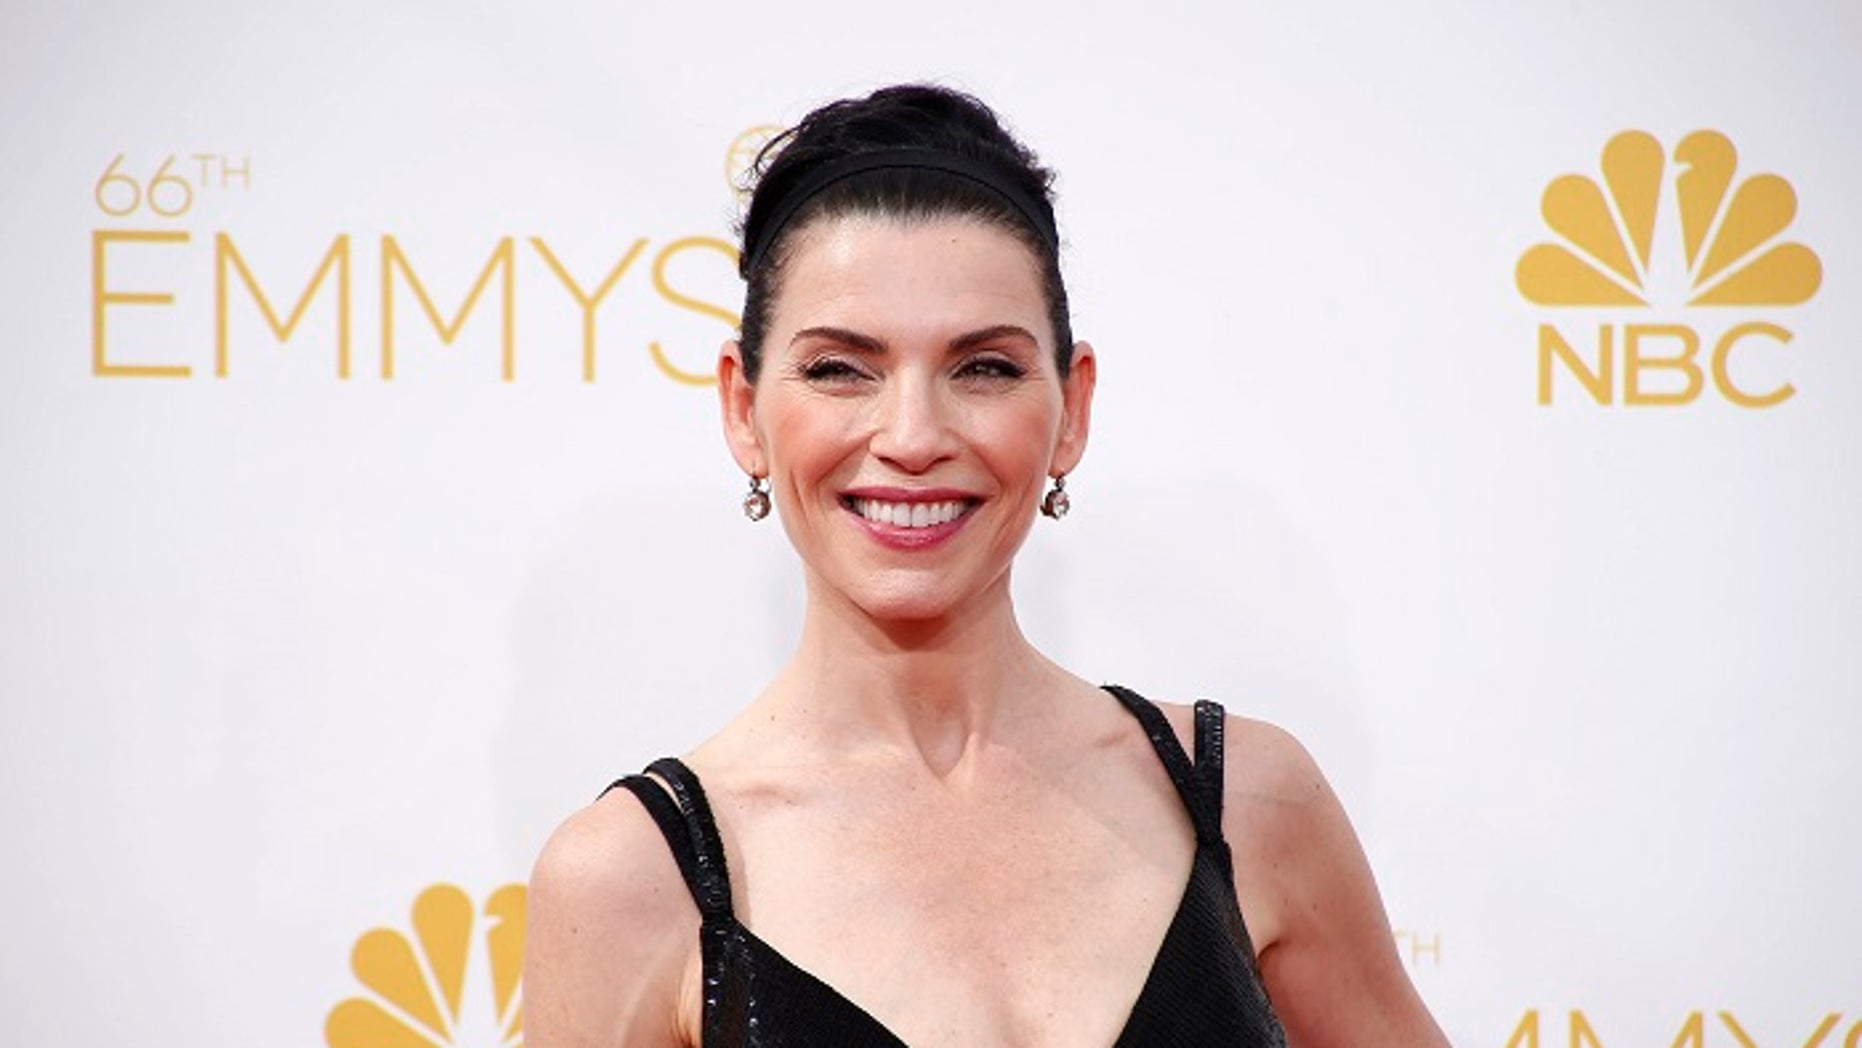 """The Good Wife"" star Julianna Margulies said she had uncomfortable hotel room encounters with both Harvey Weinstein and Steven Seagal."